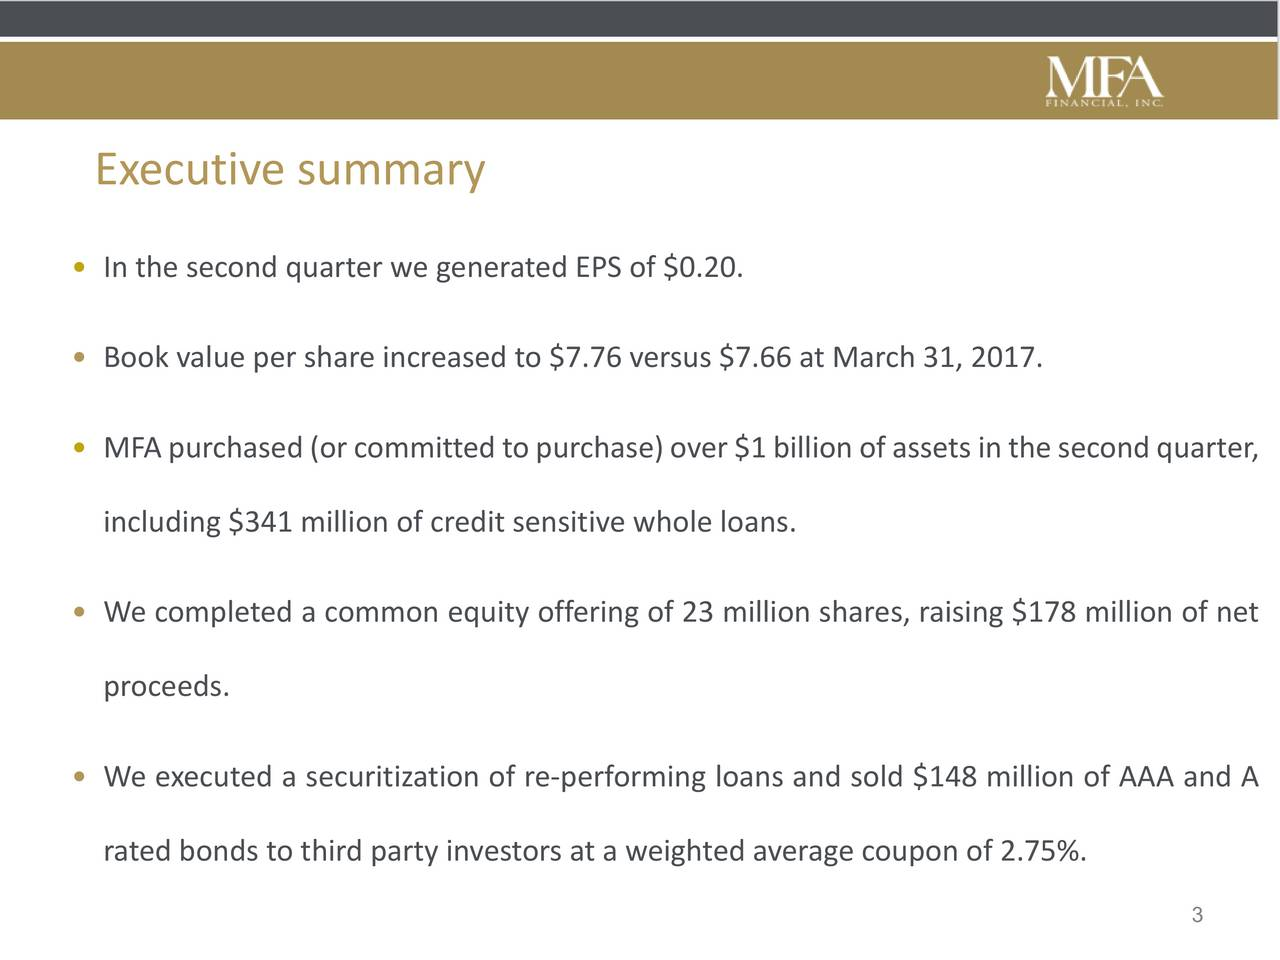 In the second quarter we generated EPS of $0.20. Book value per share increased to $7.76 versus $7.66 at March 31, 2017. MFApurchased(orcommittedtopurchase)over$1billionofassetsinthesecondquarter, including $341 million of credit sensitive whole loans. We completed a common equity offering of 23 million shares, raising $178 million of net proceeds. We executed a securitization of re-performing loans and sold $148 million of AAA and A rated bonds to third party investors at a weighted average coupon of 2.75%. 3